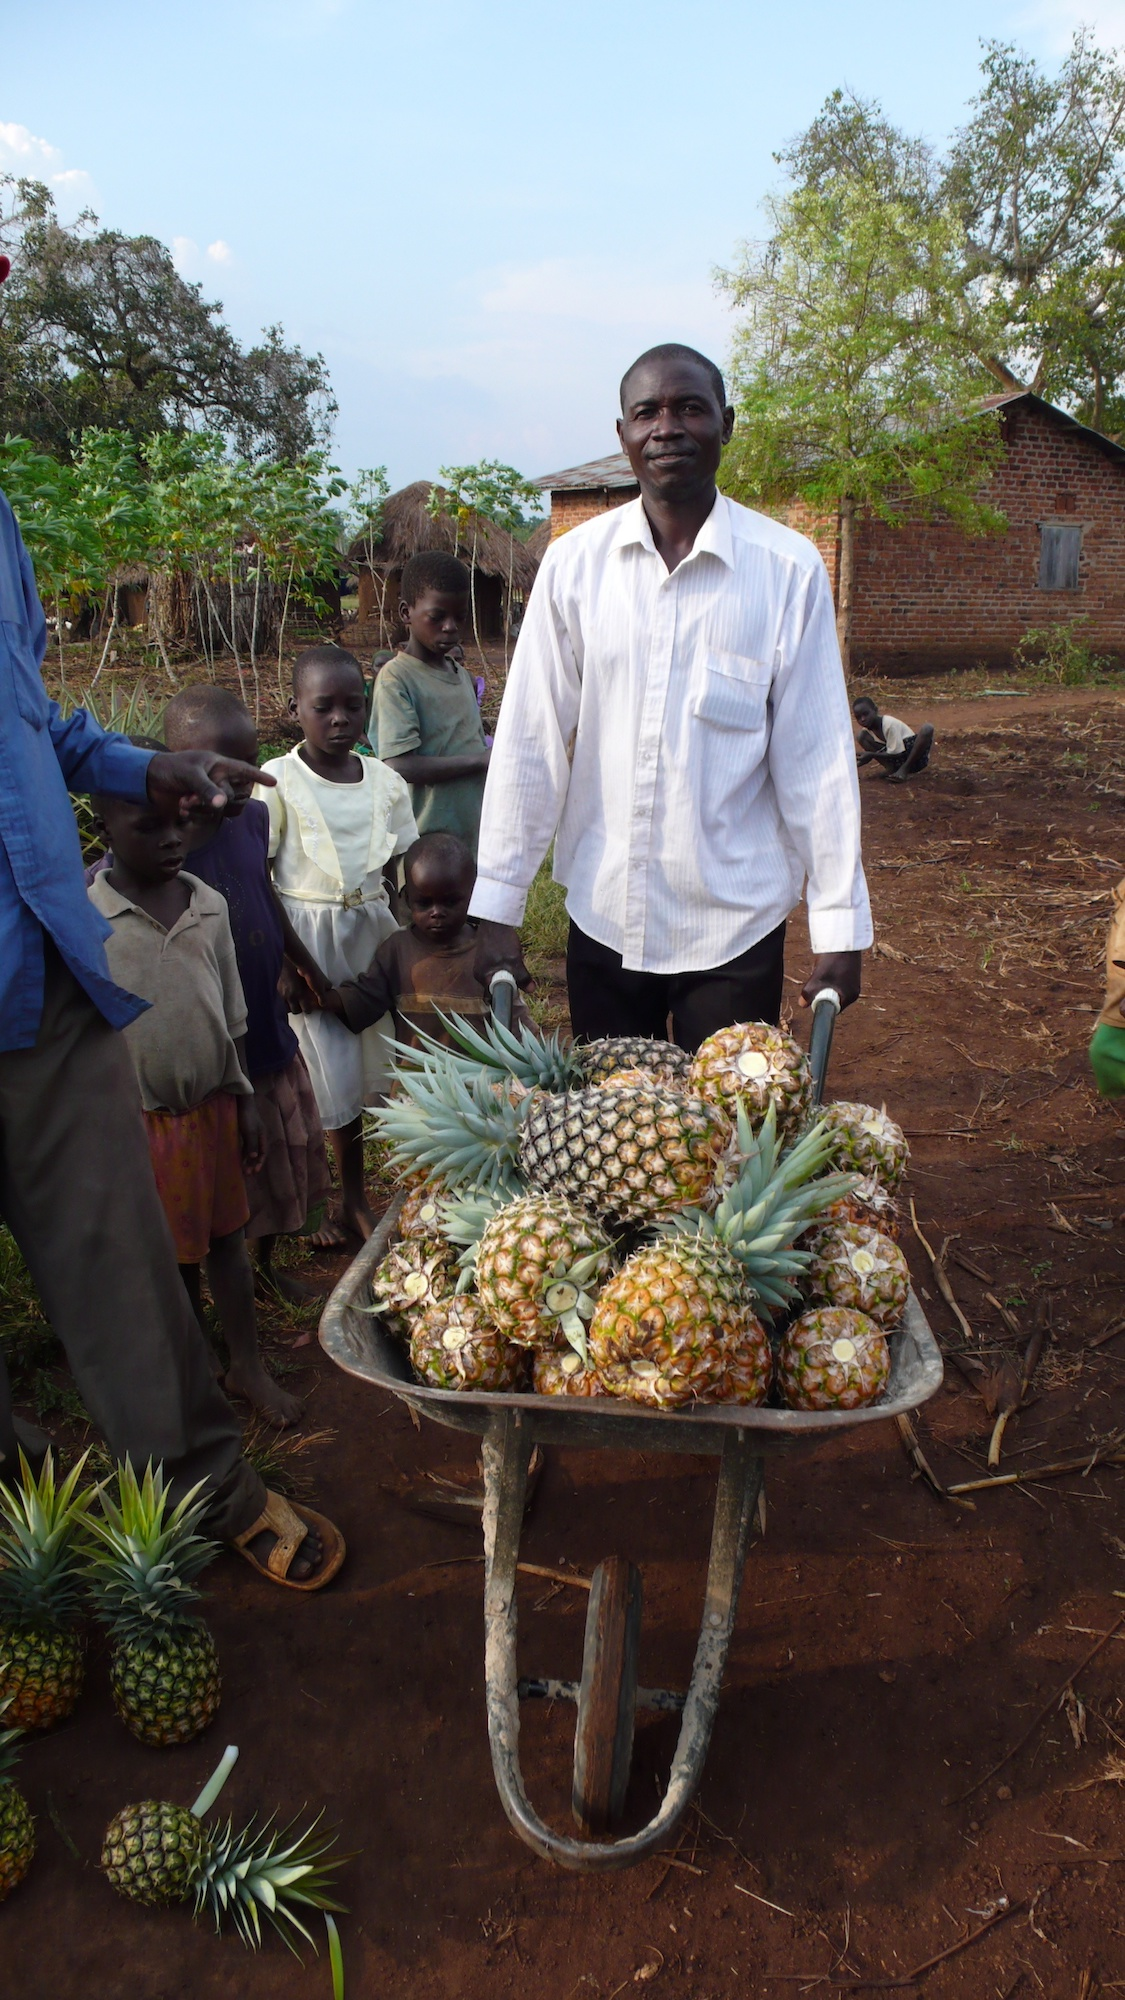 Man with wheelbarrow full of pineapples